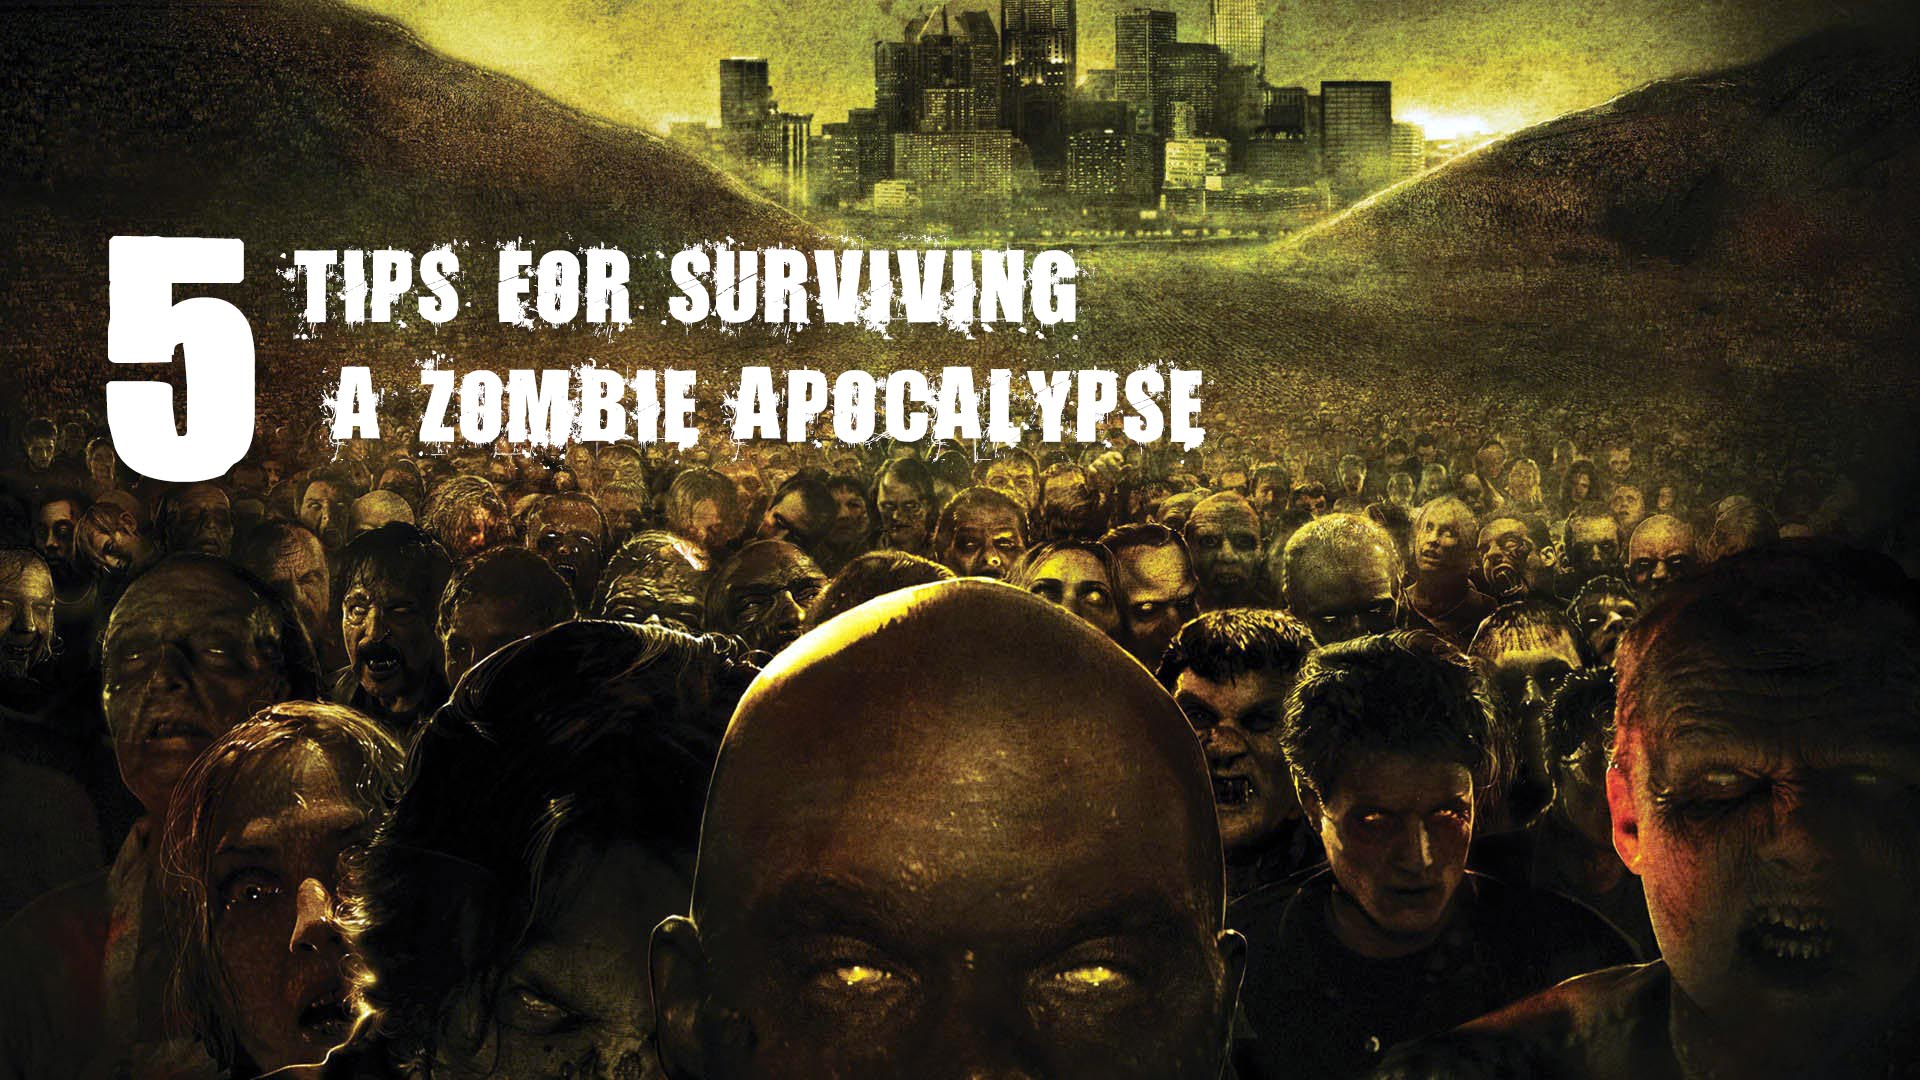 5 Tips For Surviving The Zombie Apocalypse